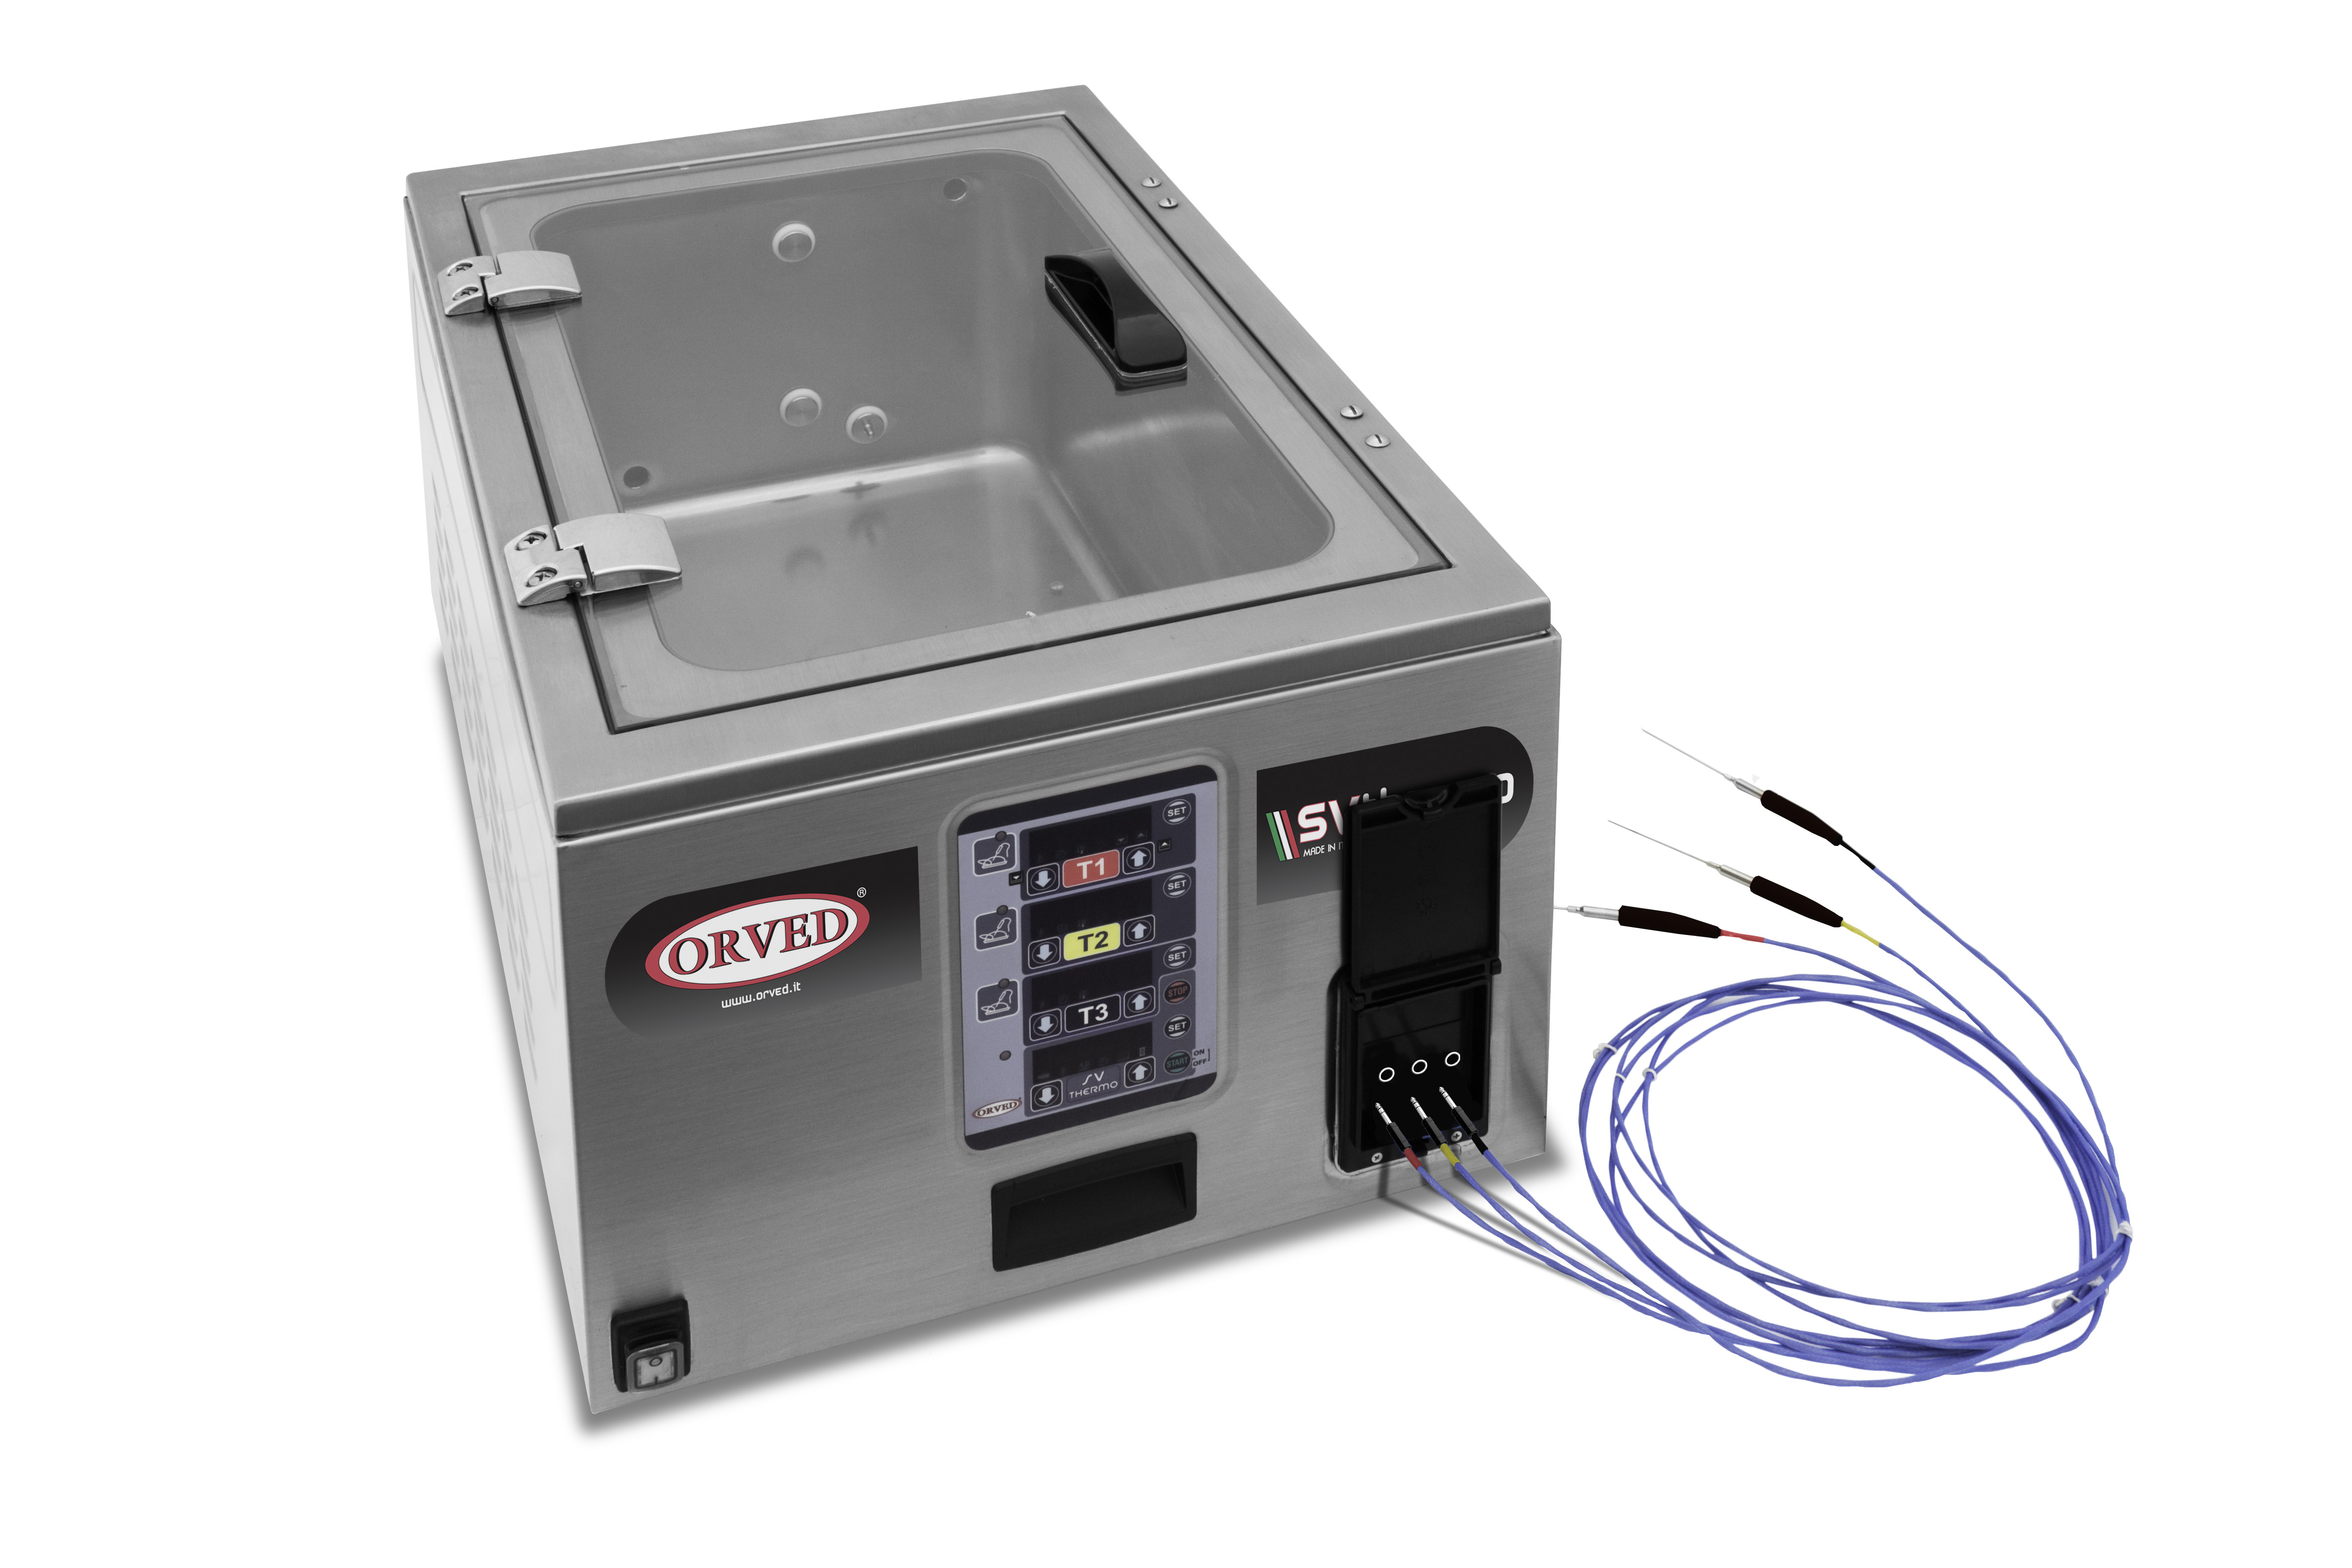 Orveds Innovative Sous Vide Cooking System Products Cooked Slowly Wiring Svthermo Chiuso Sonde